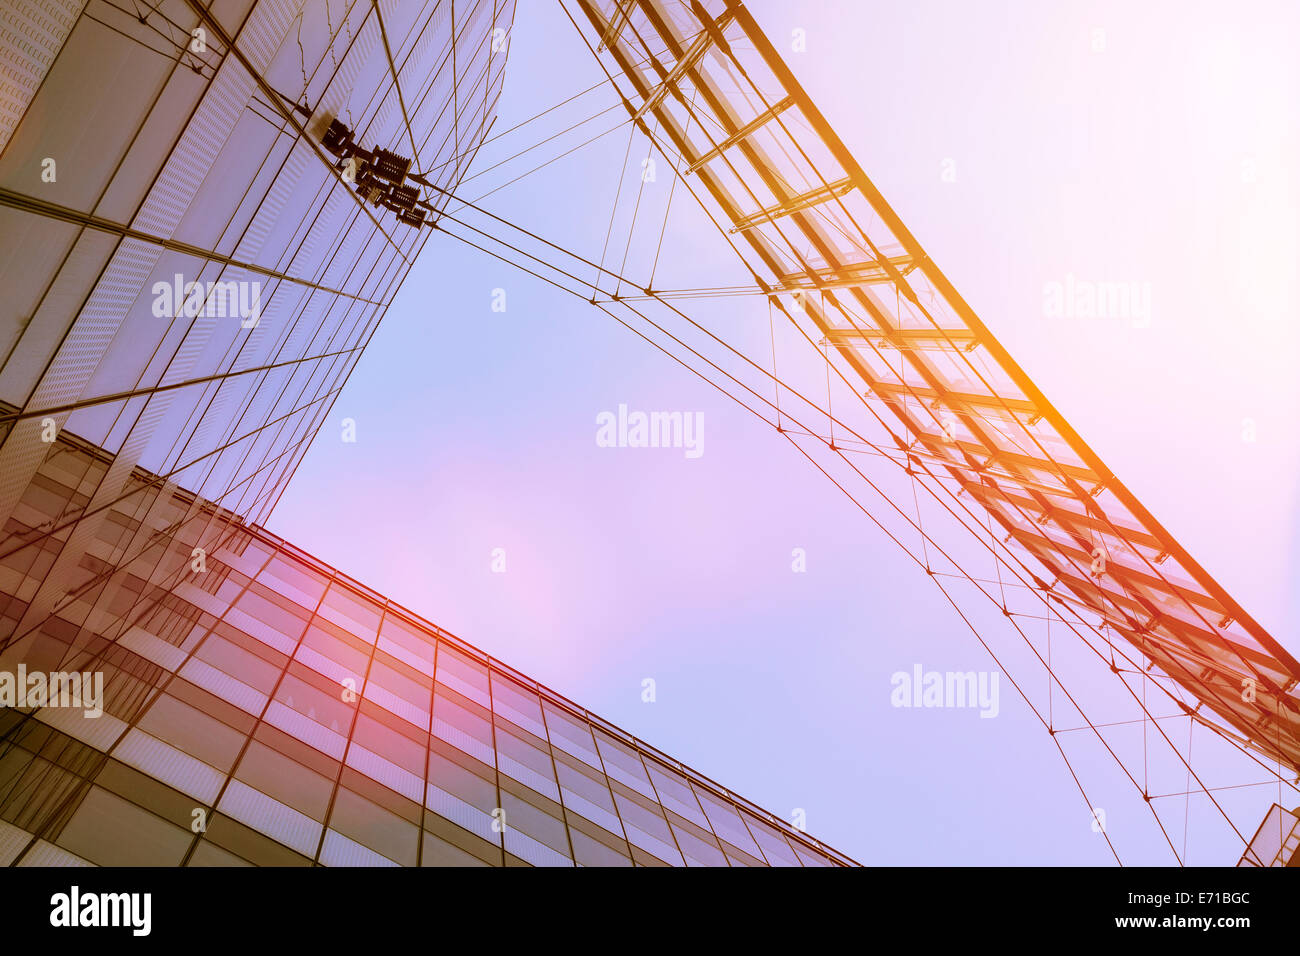 Germany, Berlin, Modern Architecture, Buildings, Glass facade and steel - Stock Image